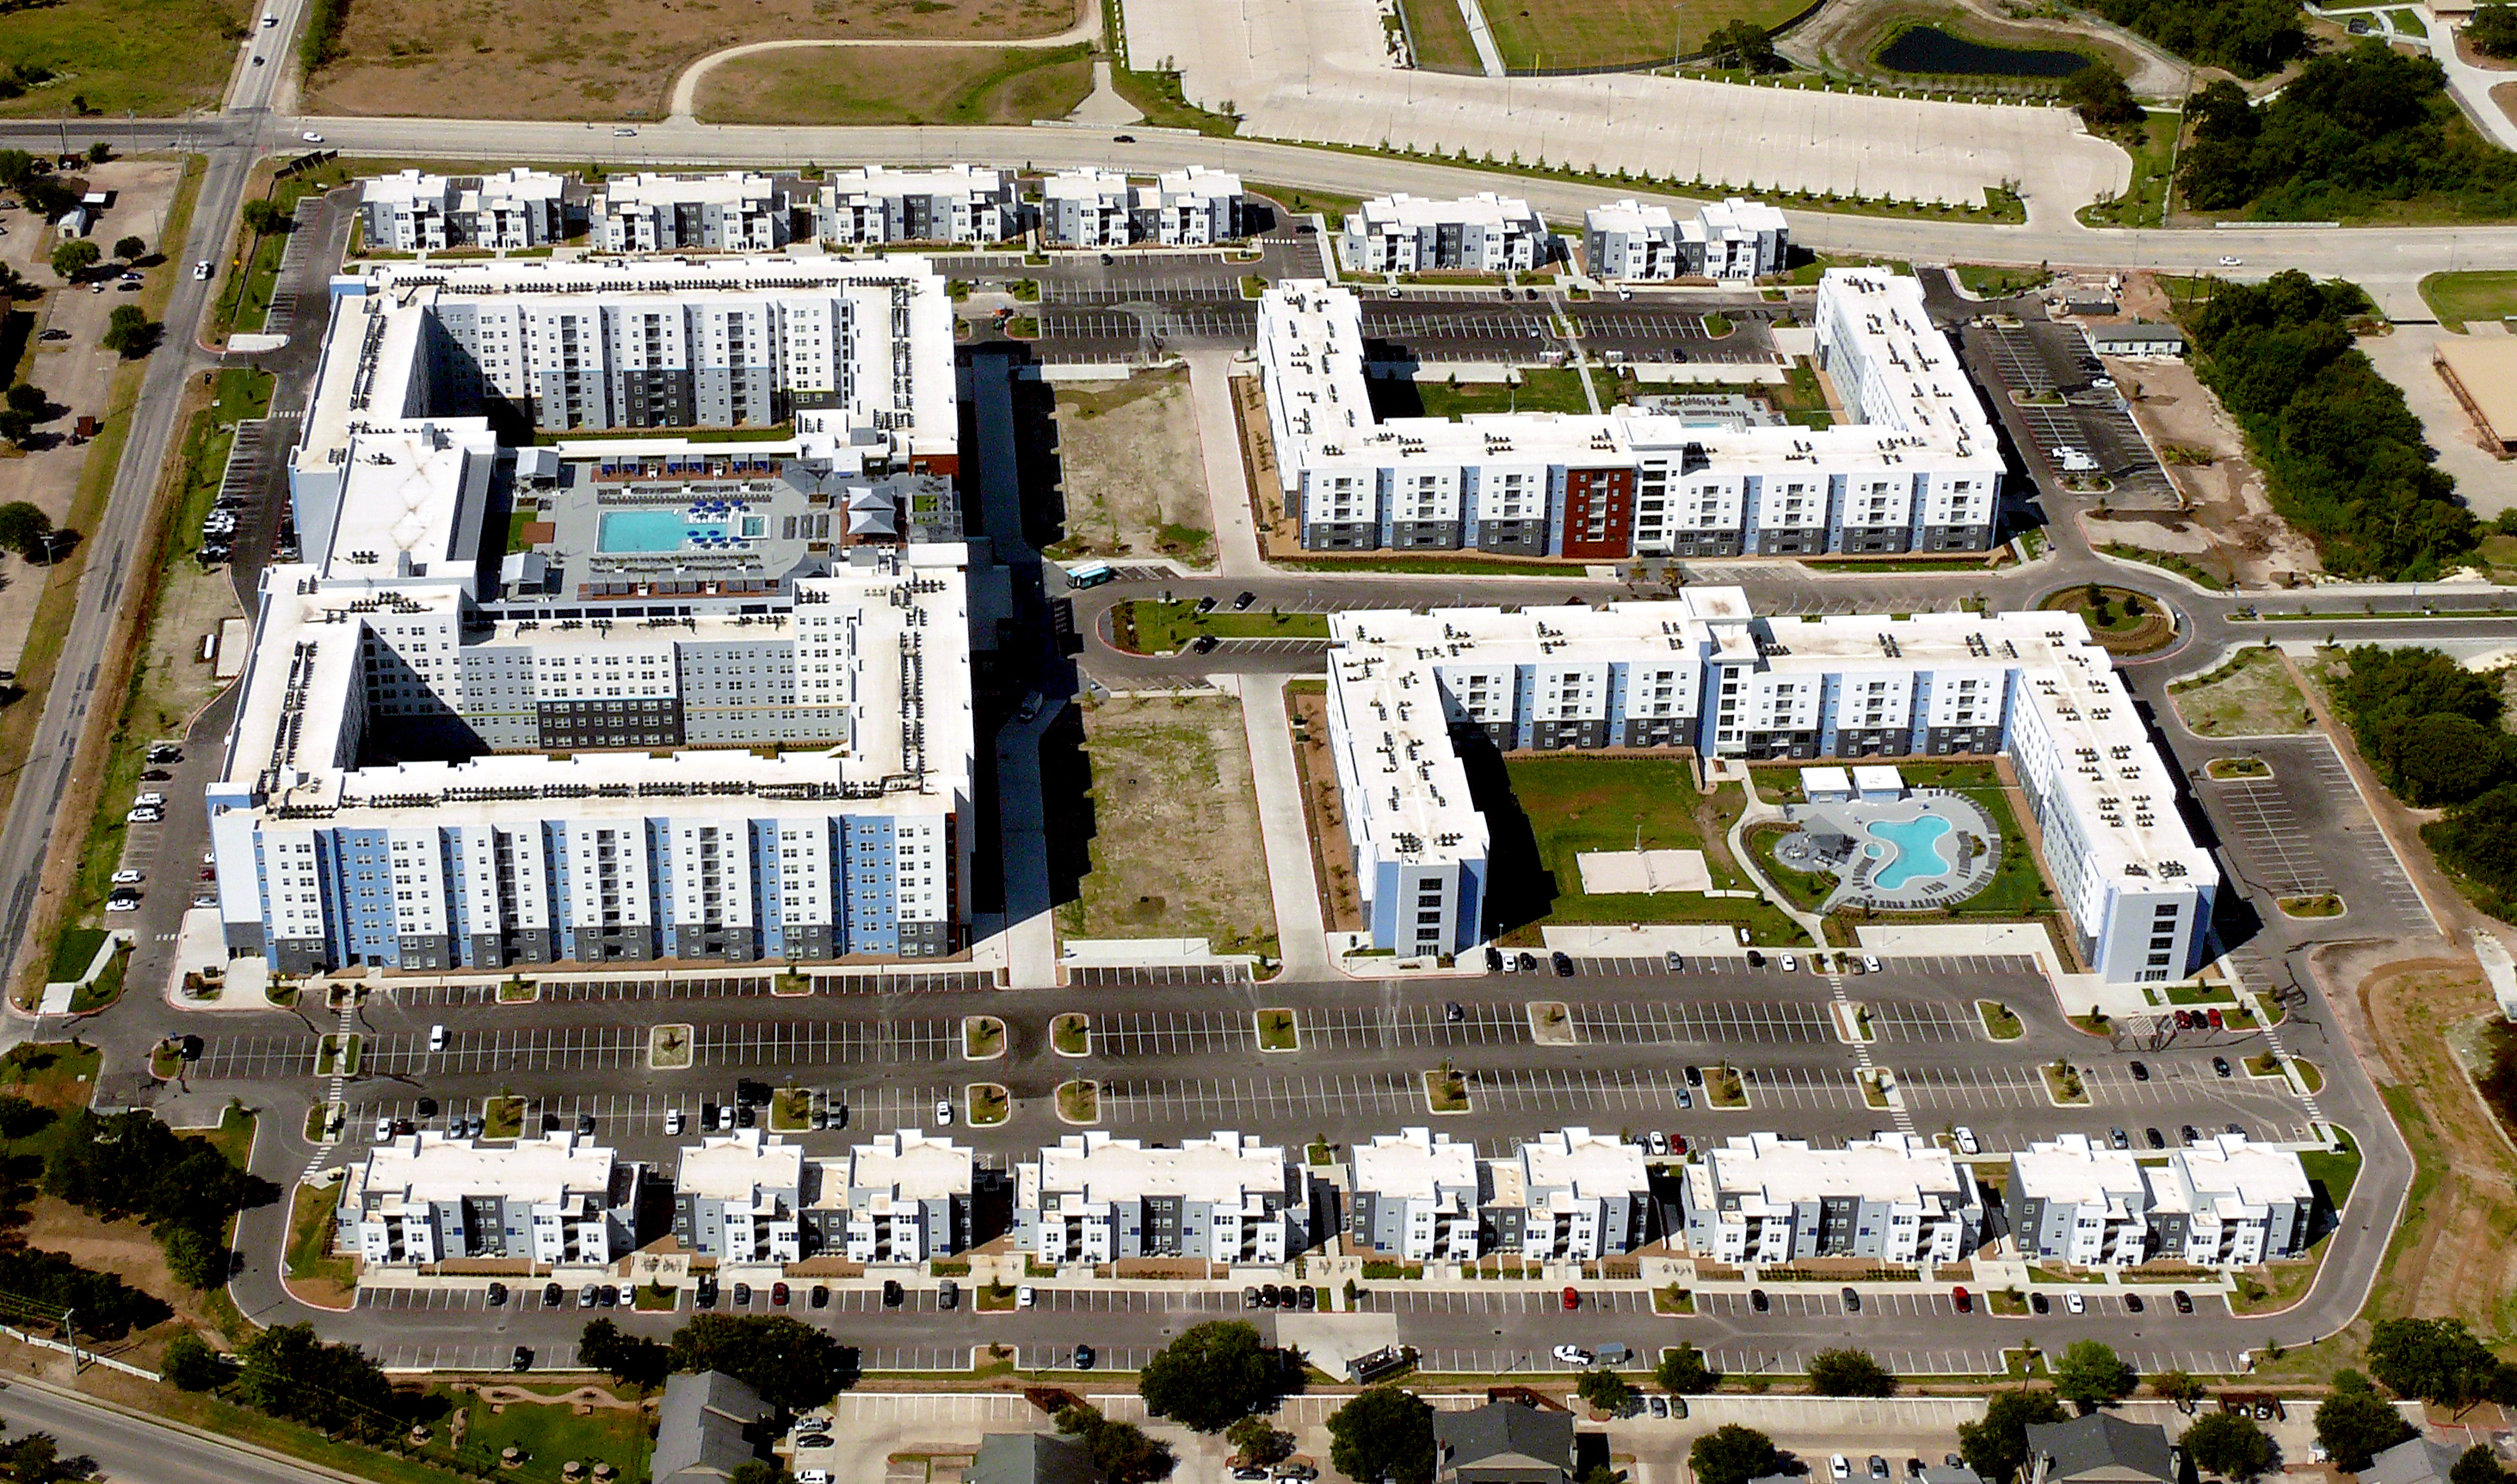 Weitz Completes Nation S Largest Student Housing Development Built Under Public Private Partnership Ahead Of Schedule Business Wire